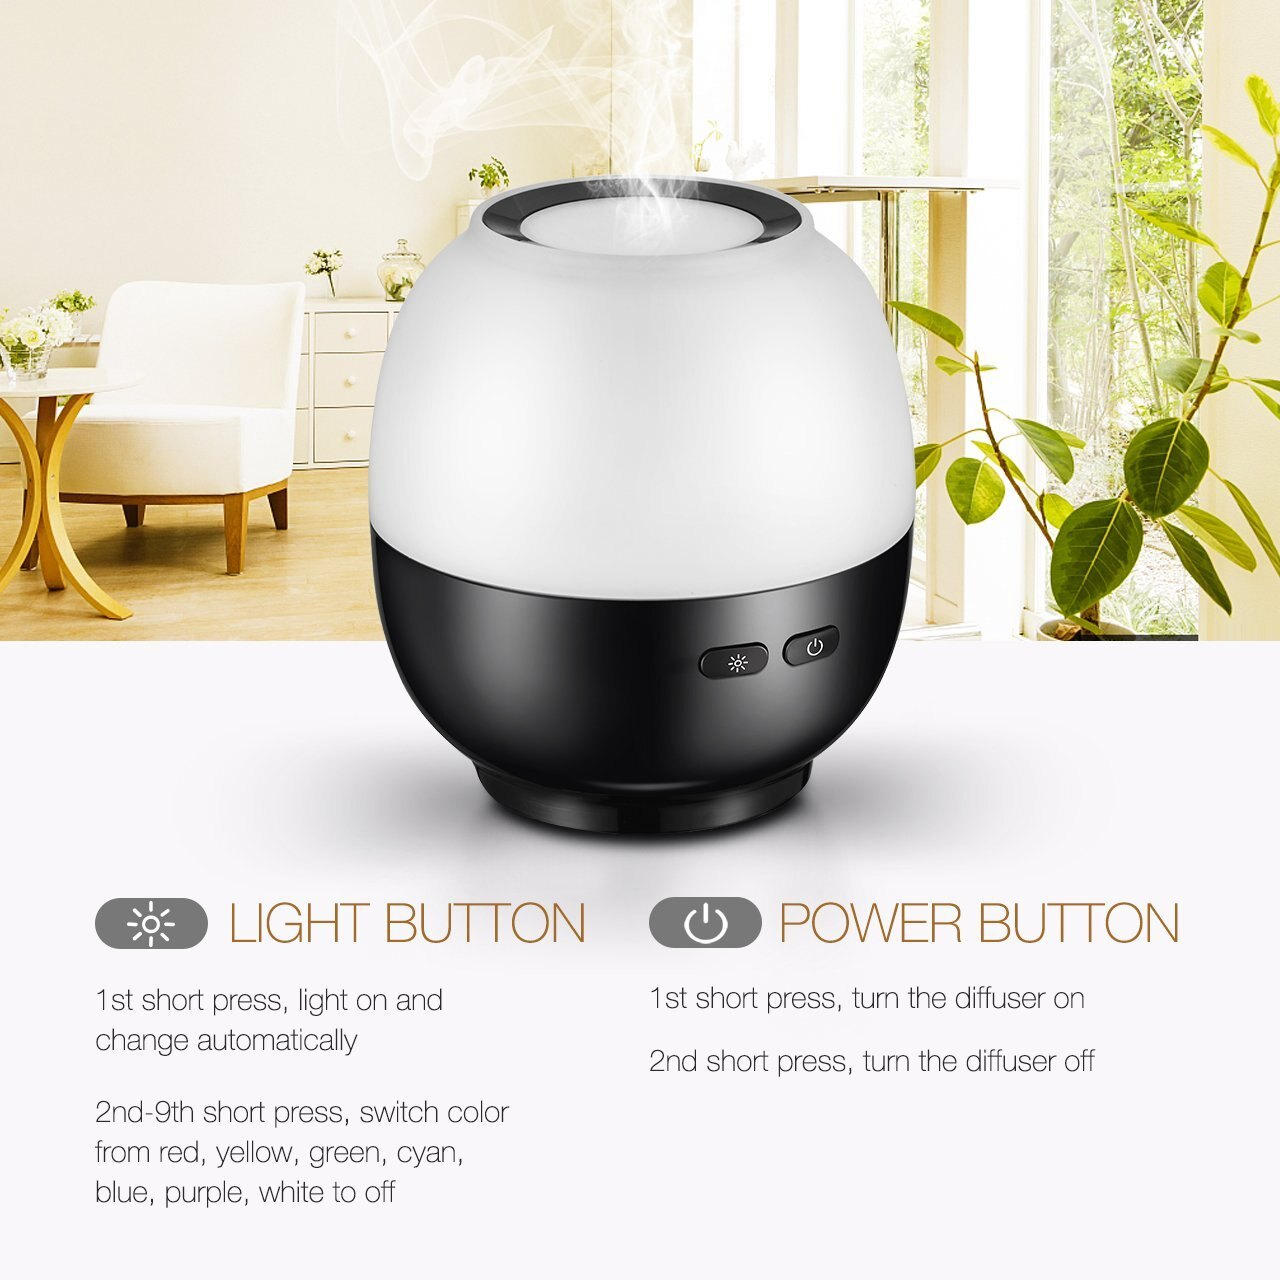 VicTsing Essential Oil Diffuser, 140ml Aroma Essential Oil Diffuser with 7-Color LED Light, Waterless Auto-Off Function, Whisper-Quiet Operation, Suits for Home, Yoga, Office, Spa, Bedroom, Baby Room 3